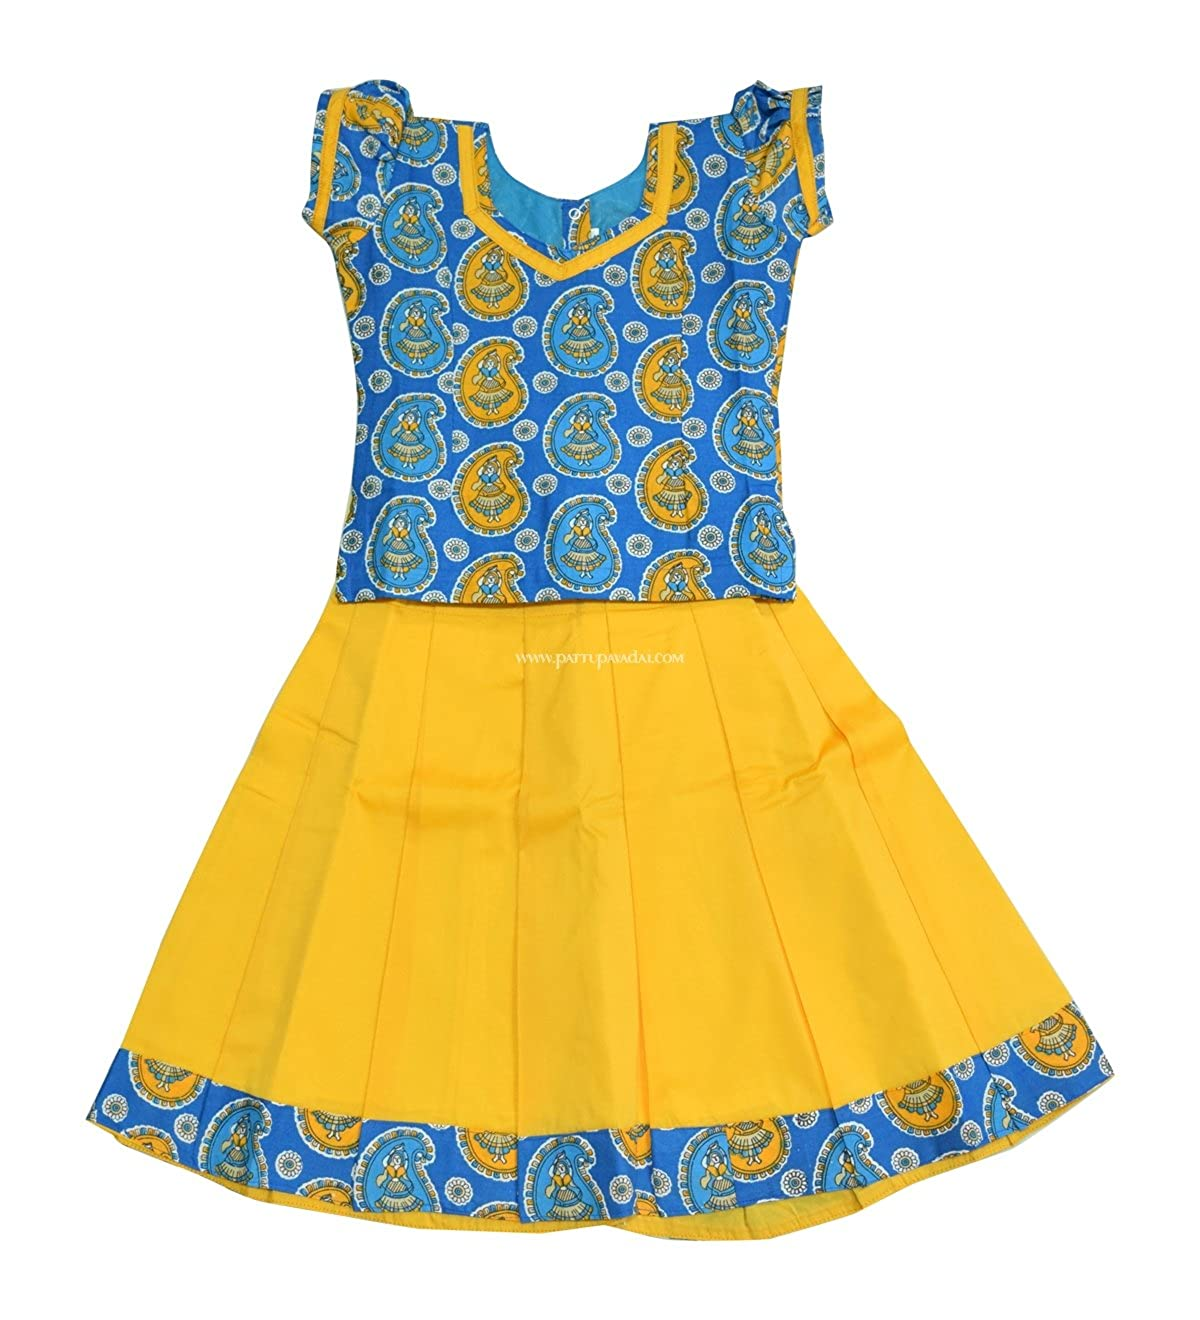 3a08b00e16a7 Pattu Pavadai Raw Silk Cotton Pavada Set Blue and Yellow for Baby Girls and  Kids: Amazon.in: Clothing & Accessories